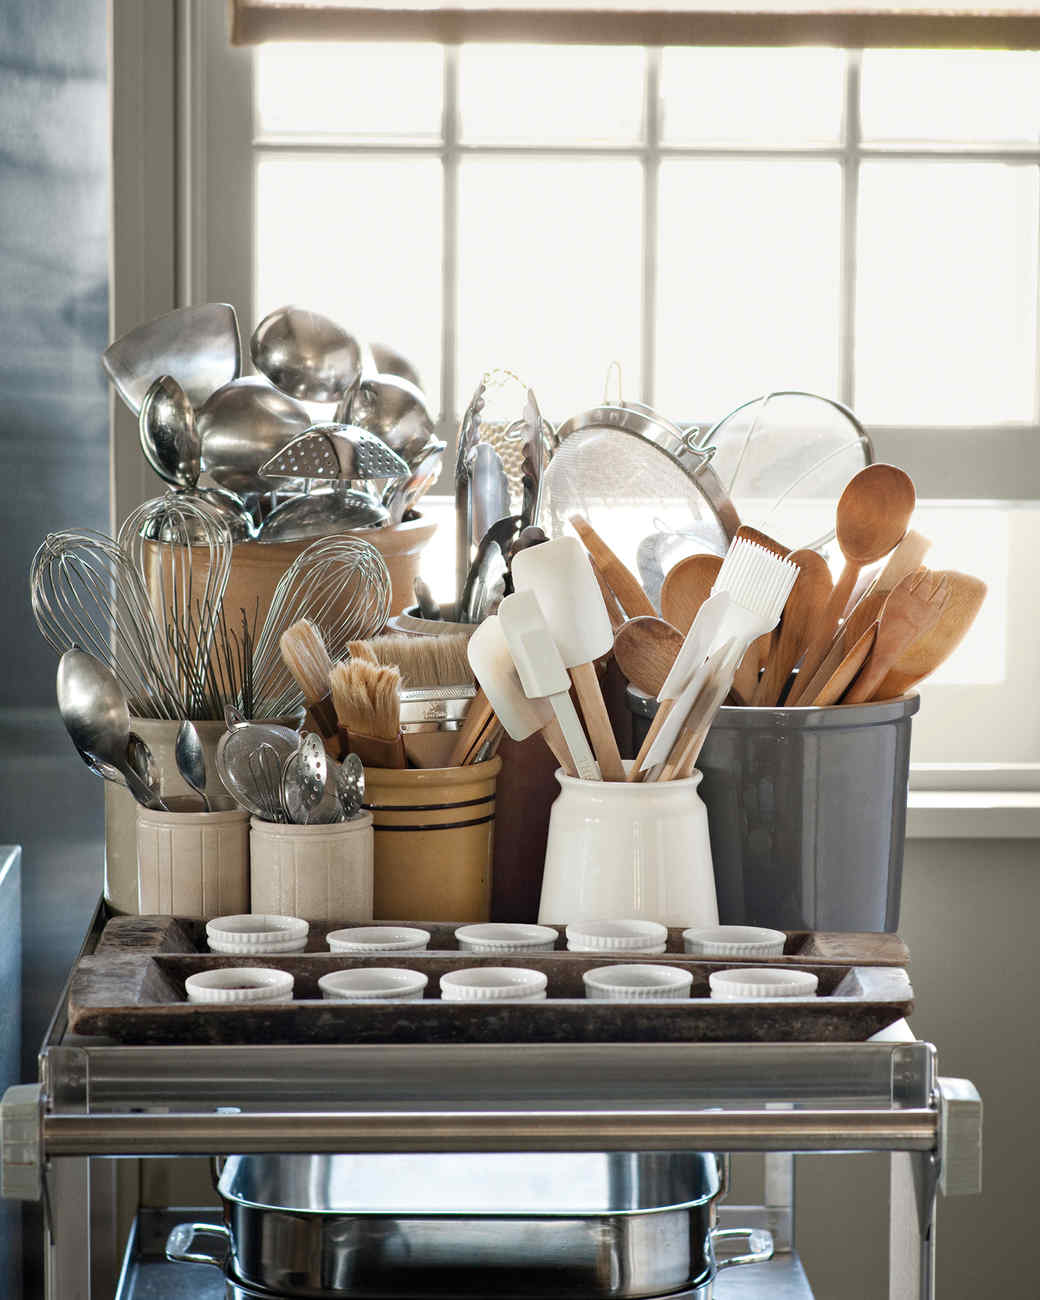 Kitchen Organizer Storage Organize Your Kitchen Cabinets In Nine Easy Steps Martha Stewart